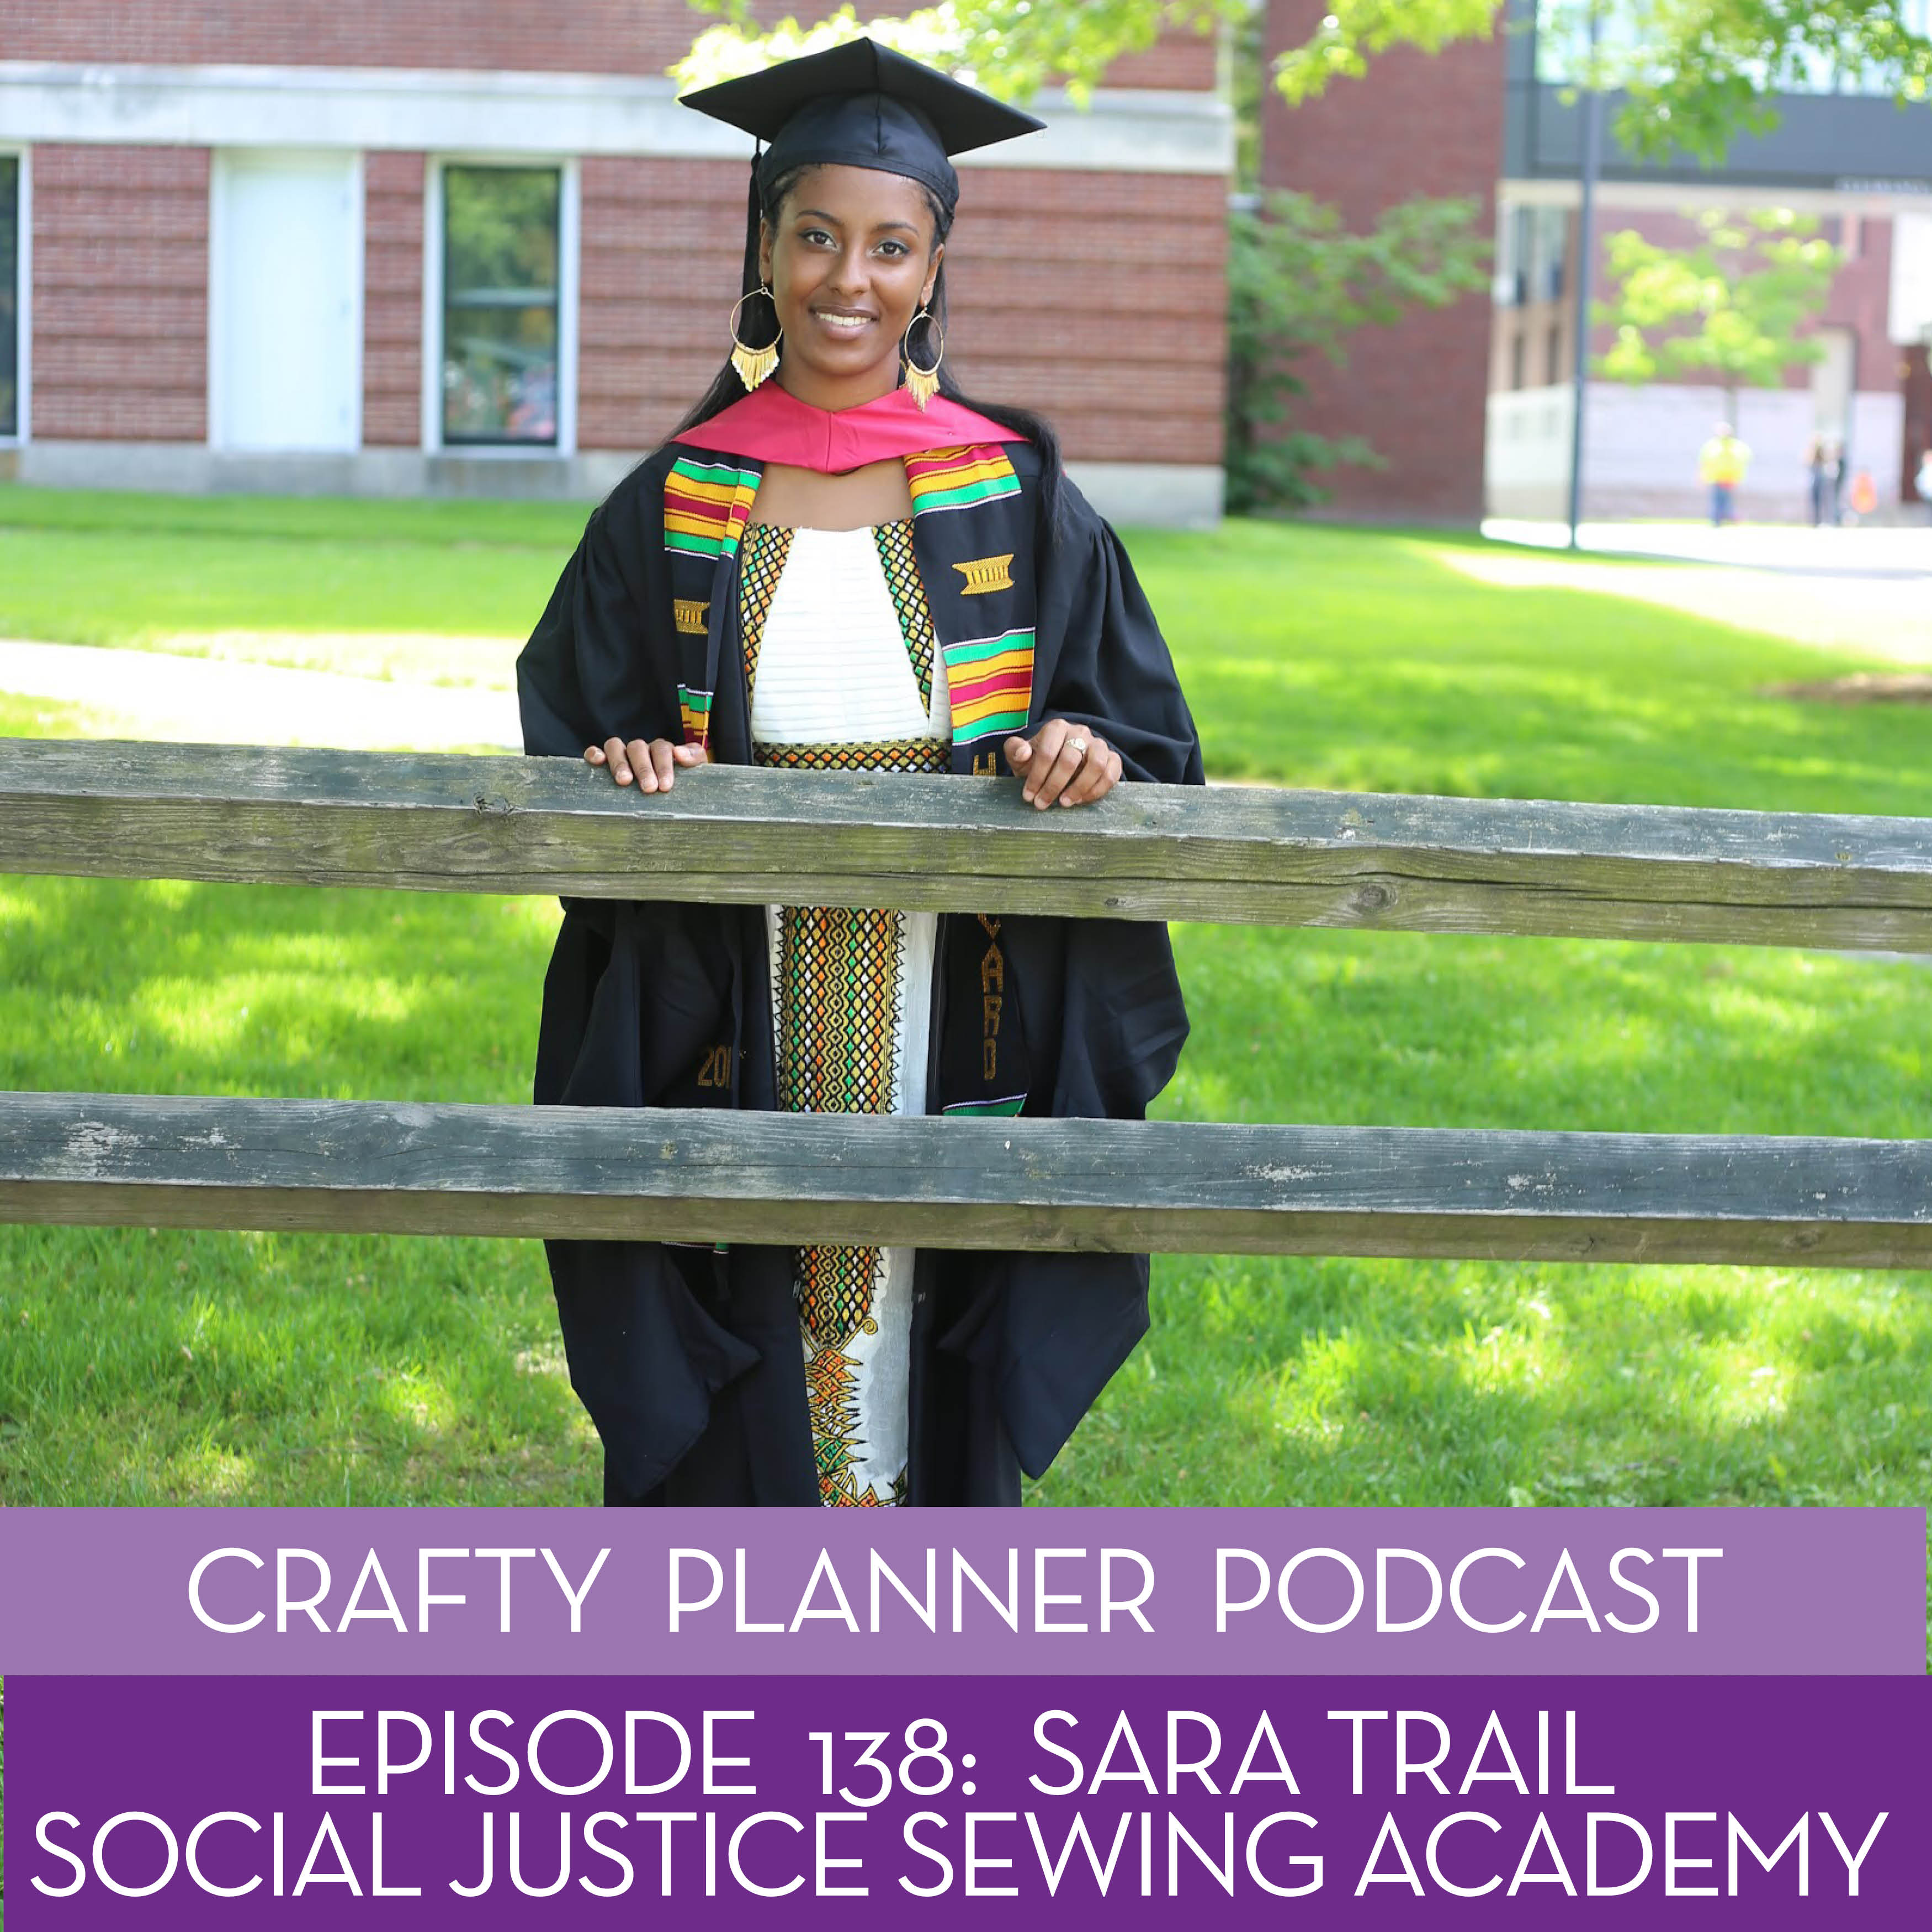 Sara Trail and the Social Justice Sewing Academy {Episode #138}